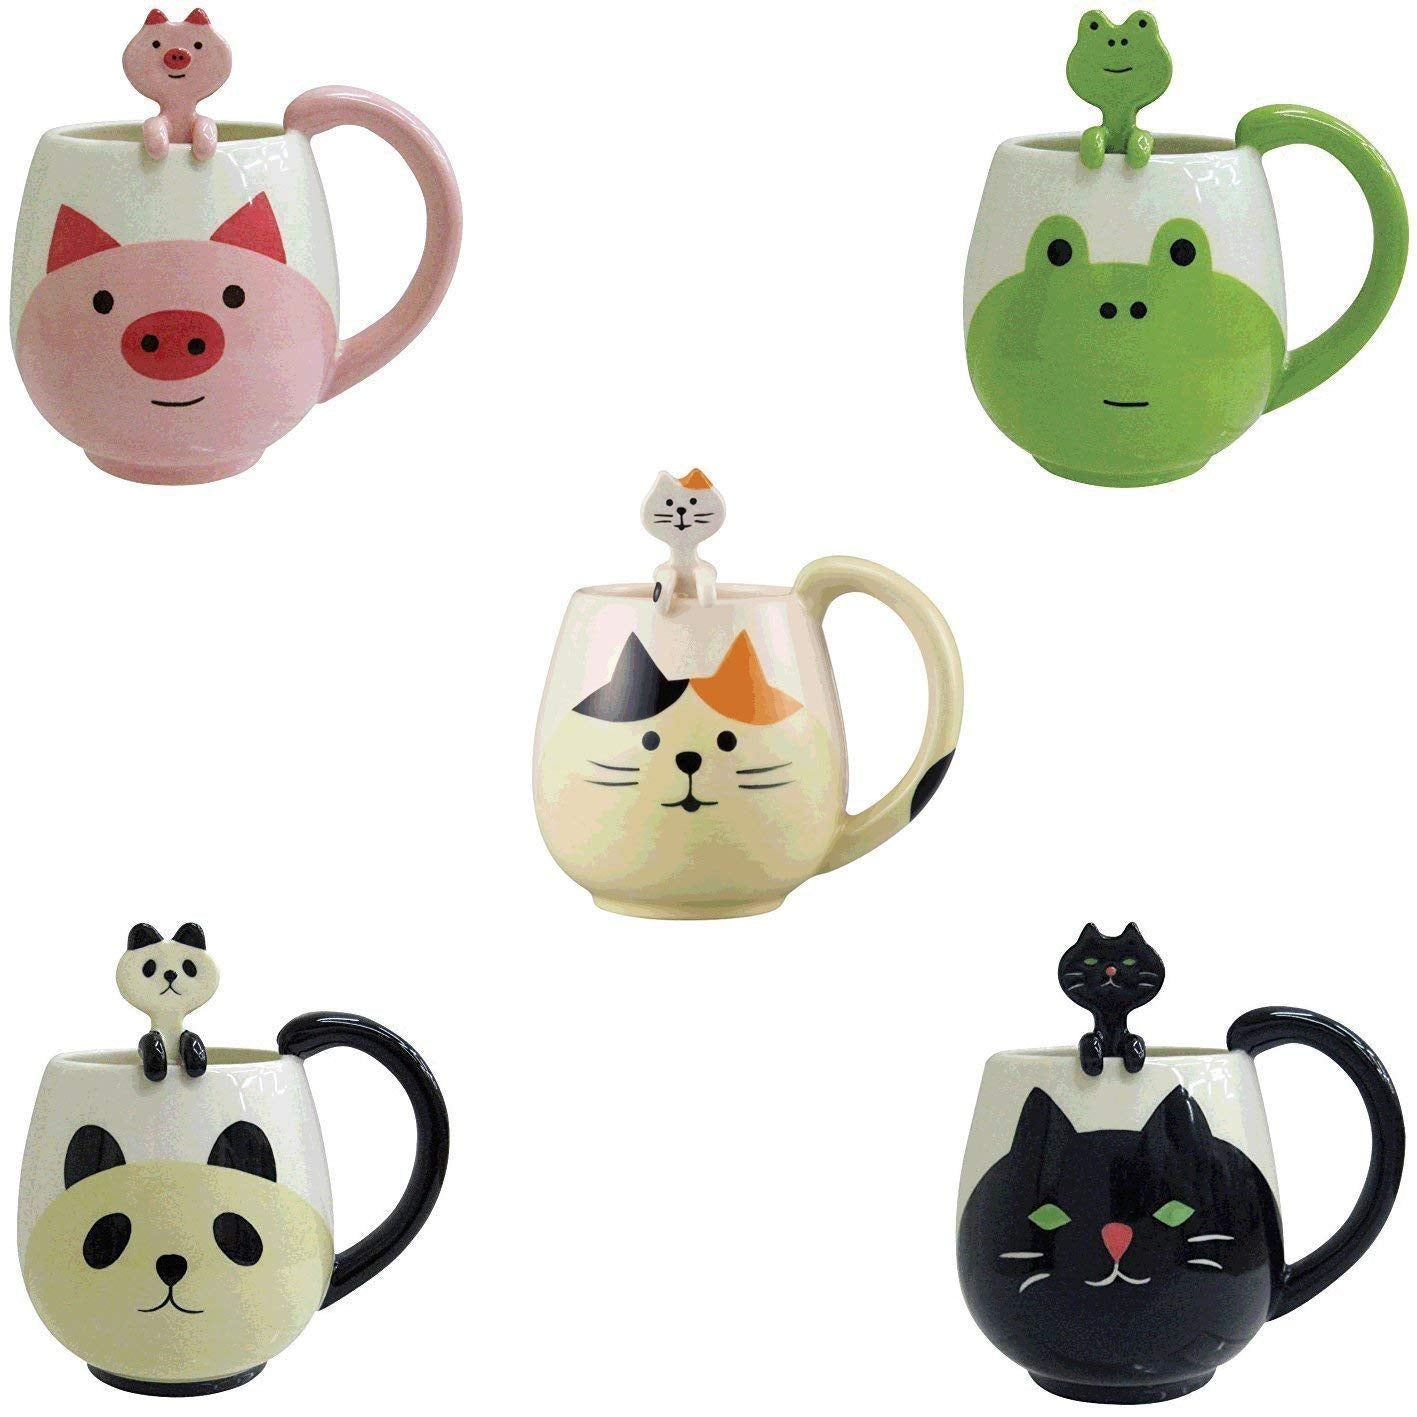 Cat 12 Oz. Mug and Spoon by Decole